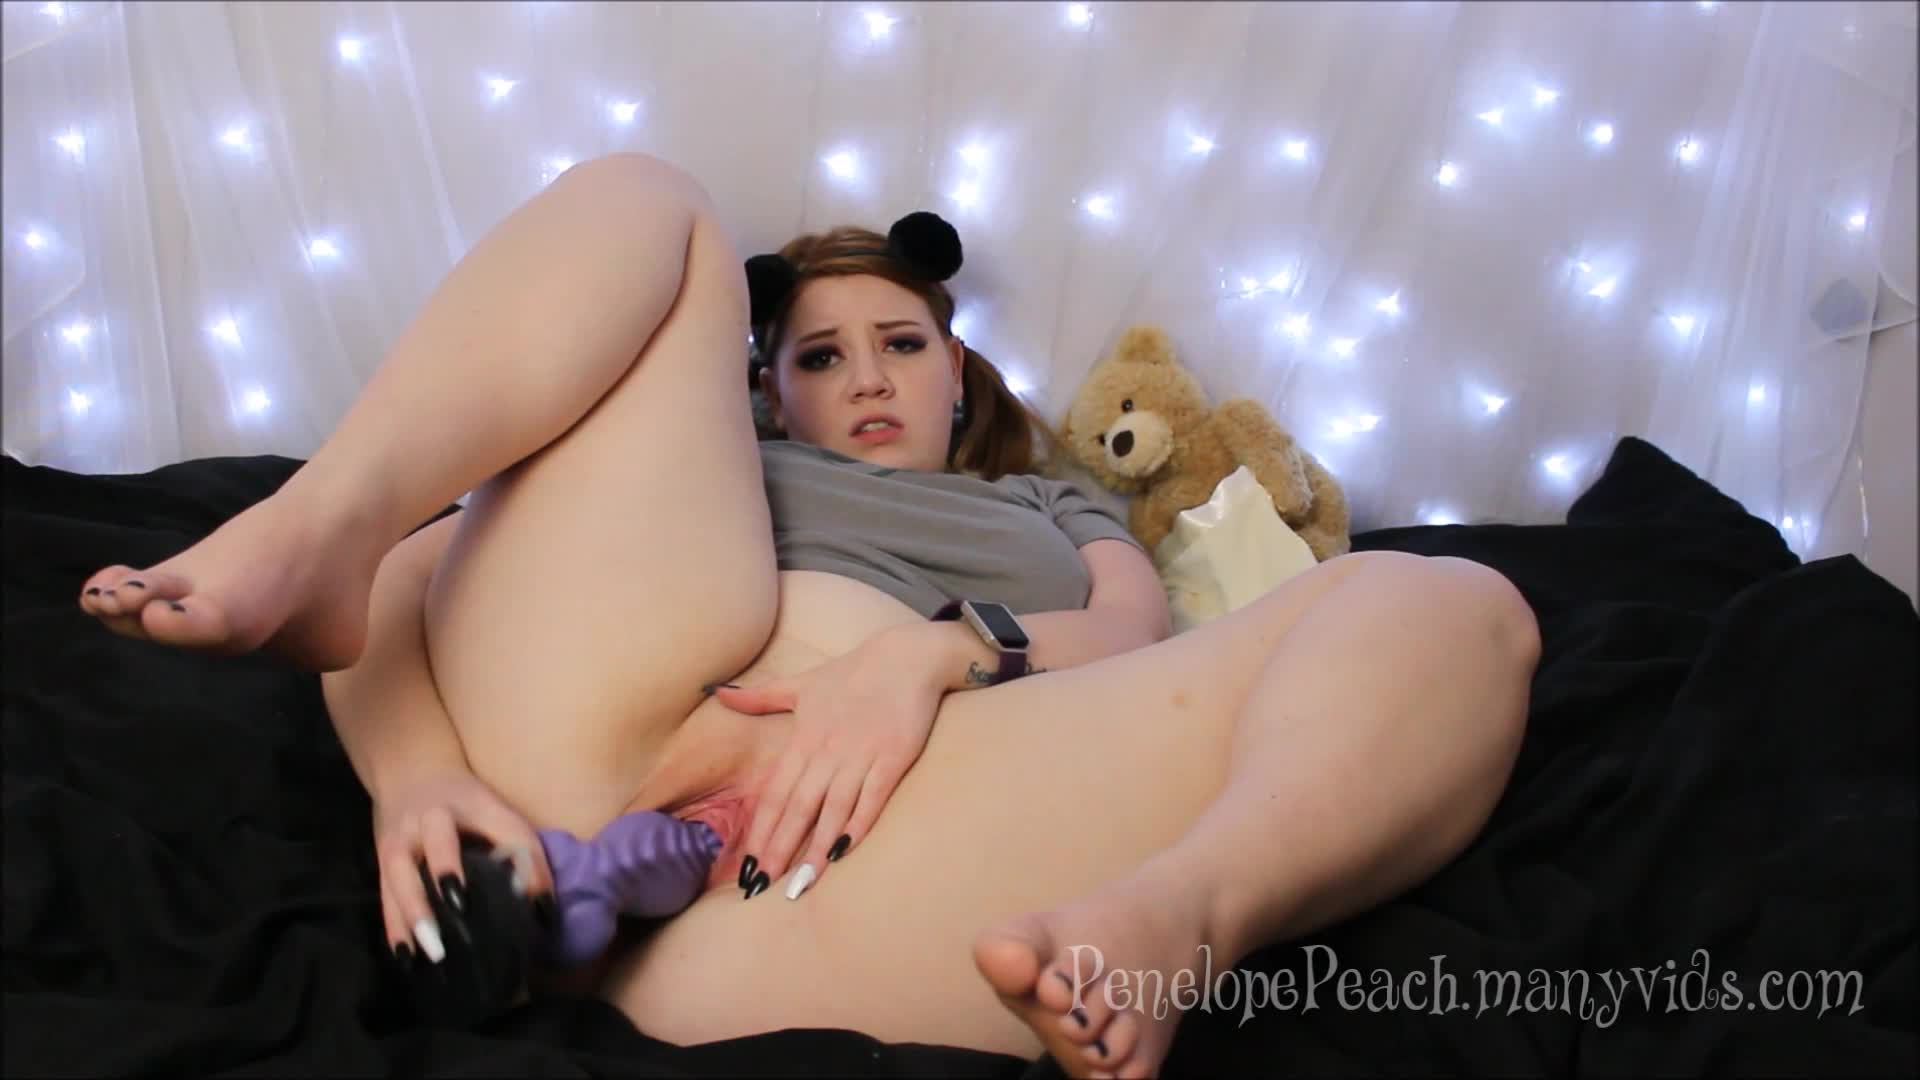 """Penelope Peach""  (Aliens & Monsters, BBW, Daddys Girl, Pussy Stretching, Role Play) Peach Fucks the Monster Under Her Bed ManyVids Production"